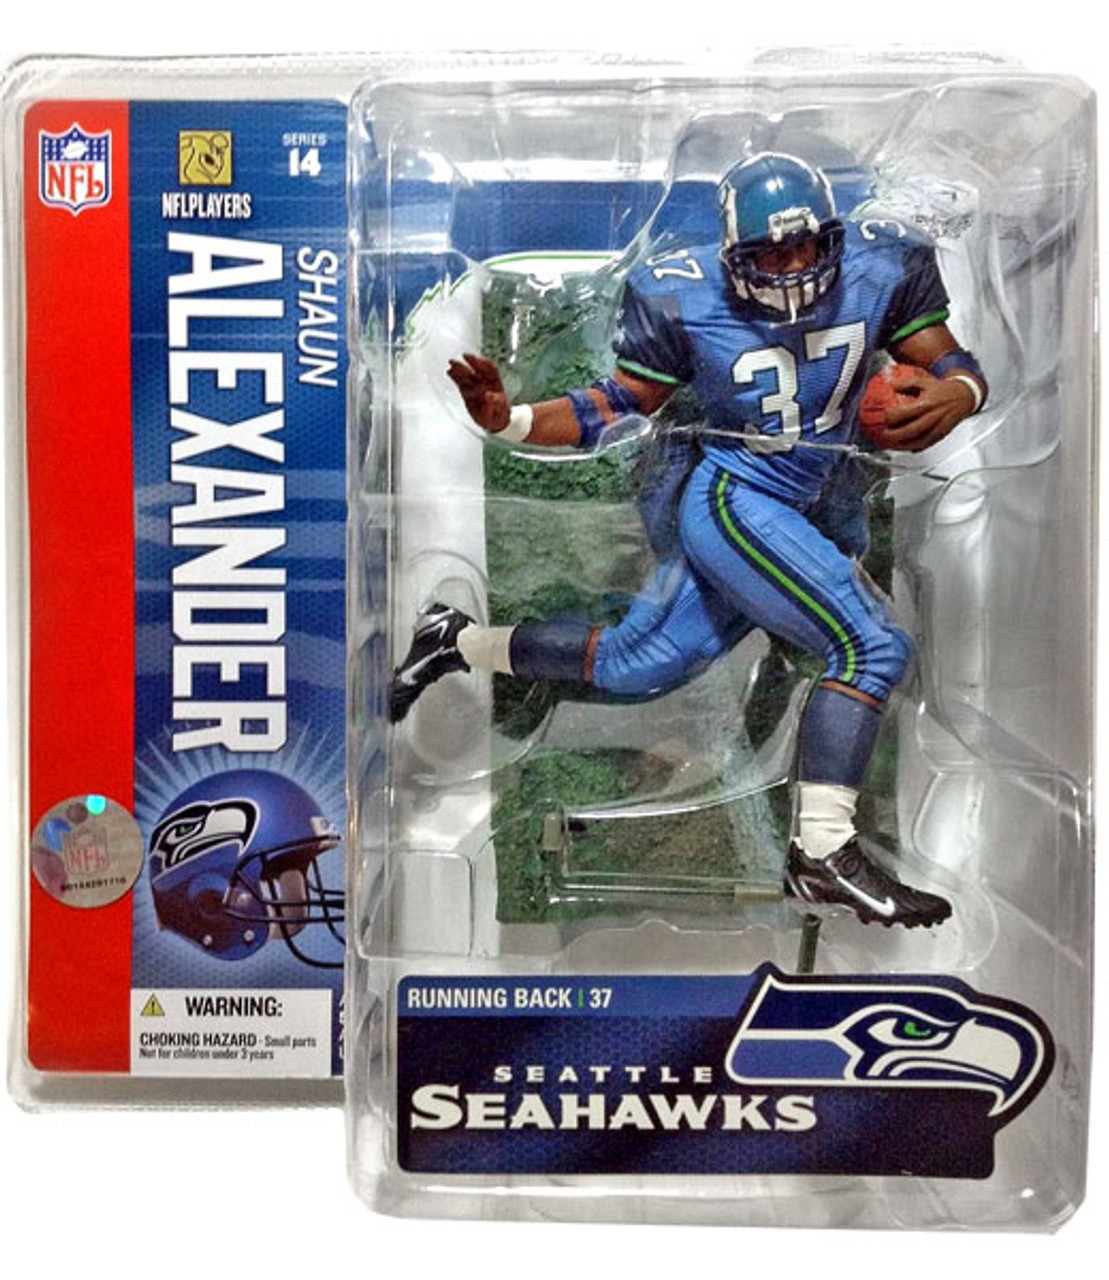 McFarlane Toys NFL Seattle Seahawks Sports Picks Series 14 Shaun Alexander Action Figure [Teal Uniform]